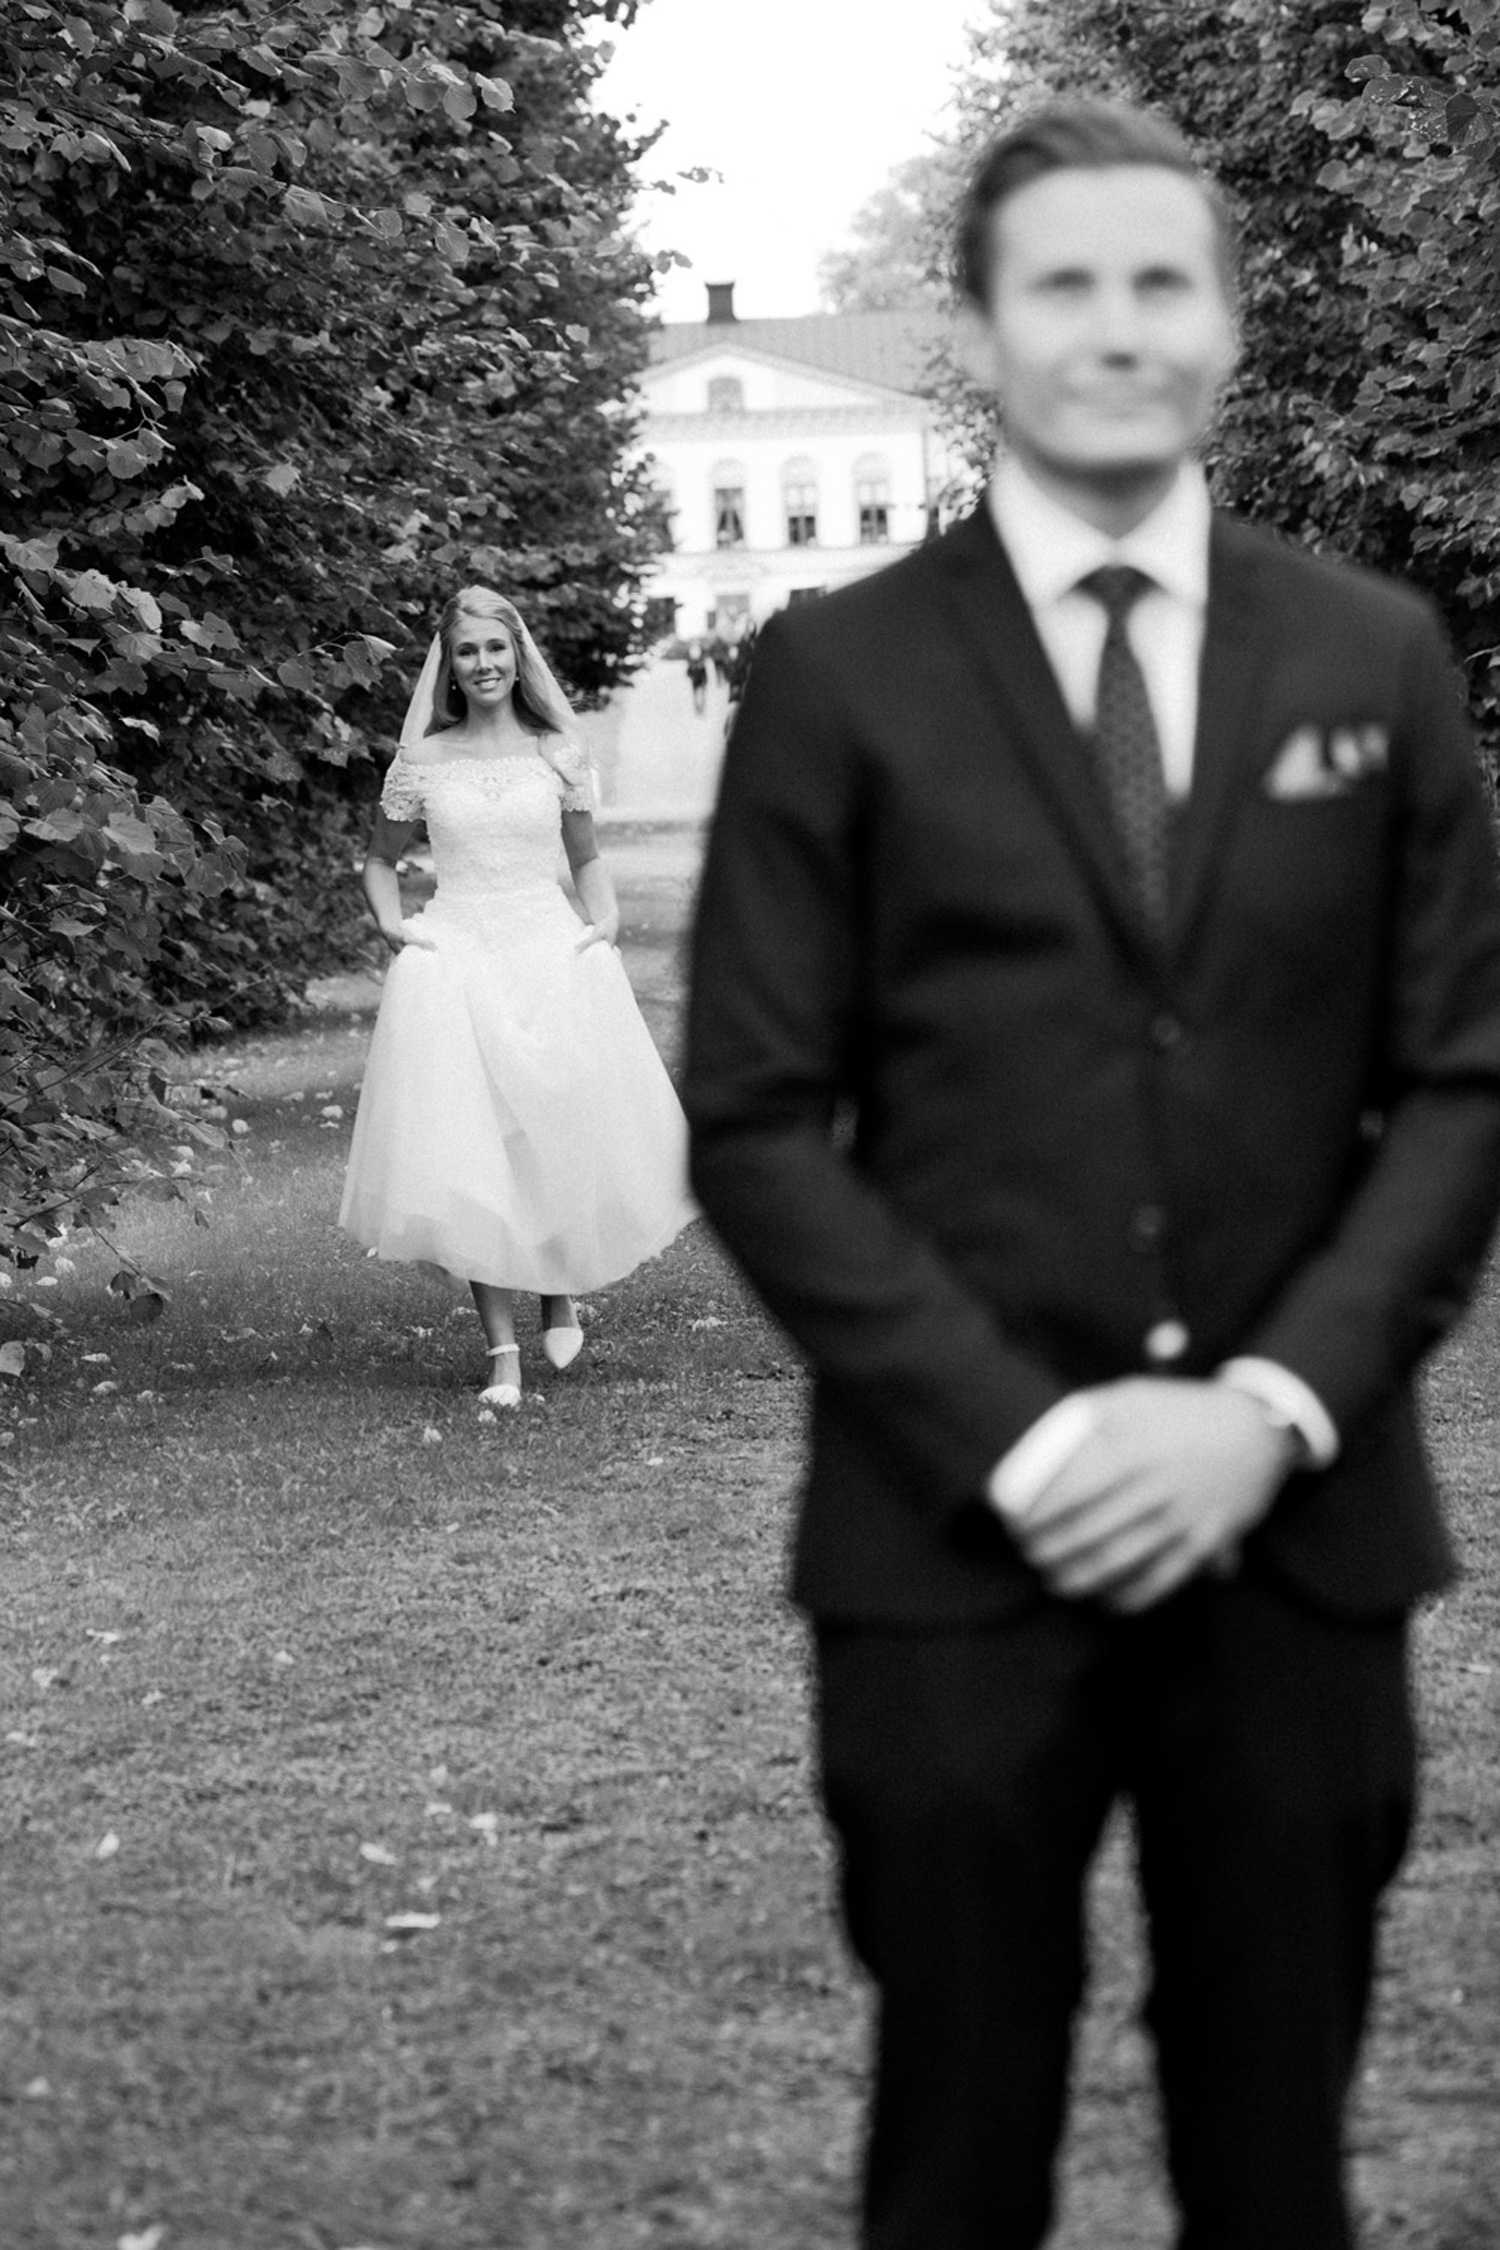 012-sweden-vidbynäs-wedding-photographer-bröllopsfotograf.jpg